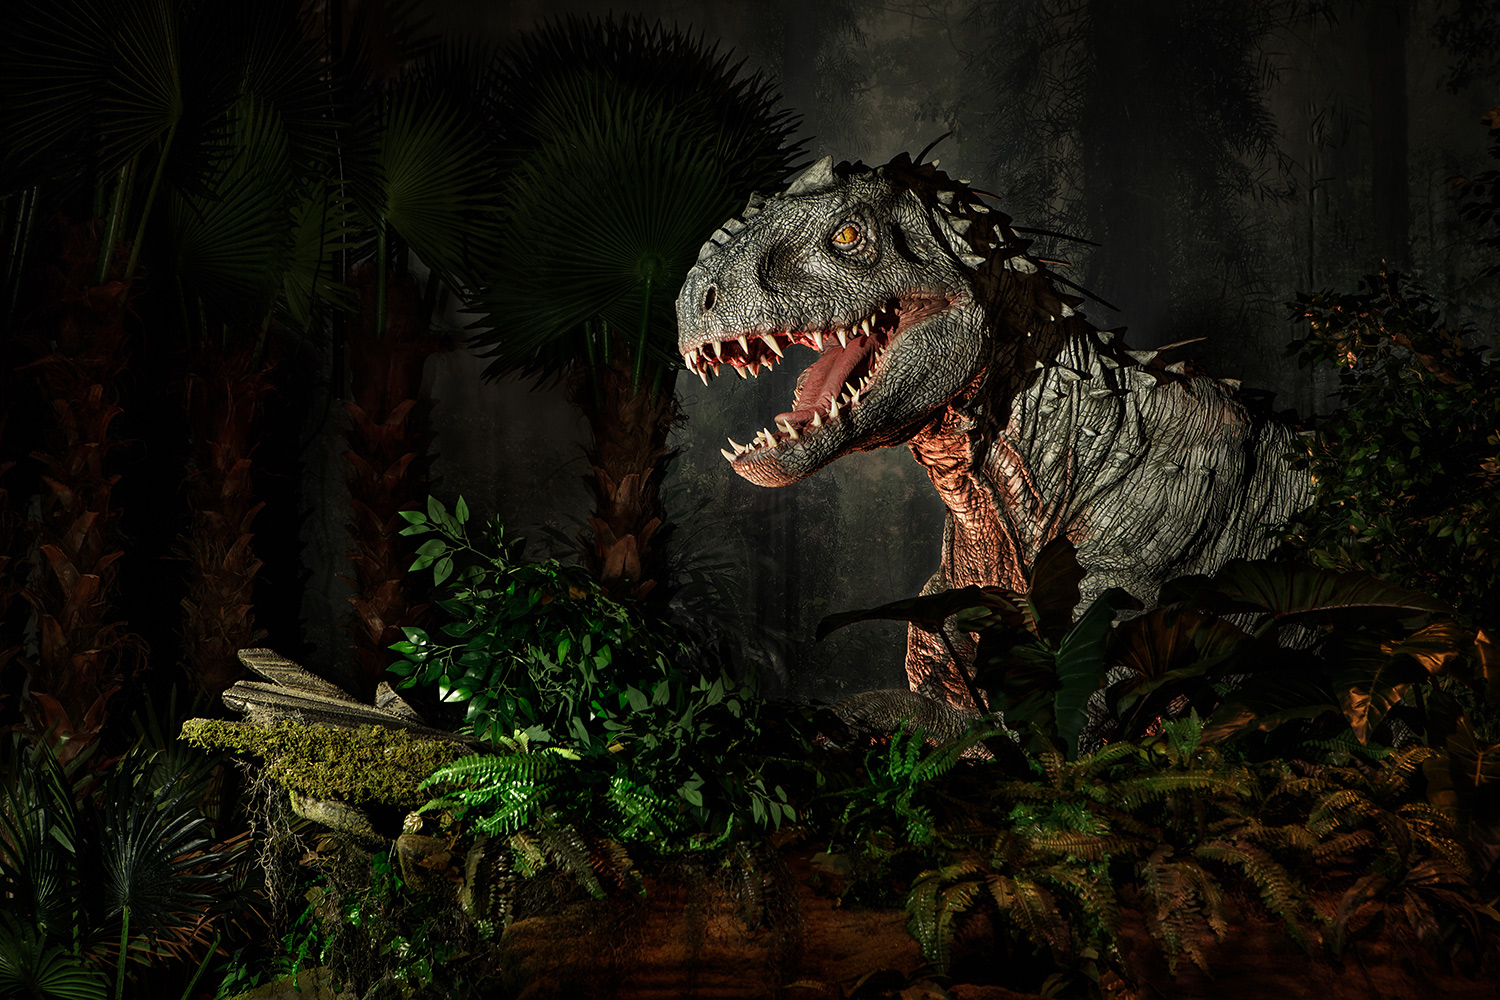 Jurassic World The Exhibition Coming To Philadelphia